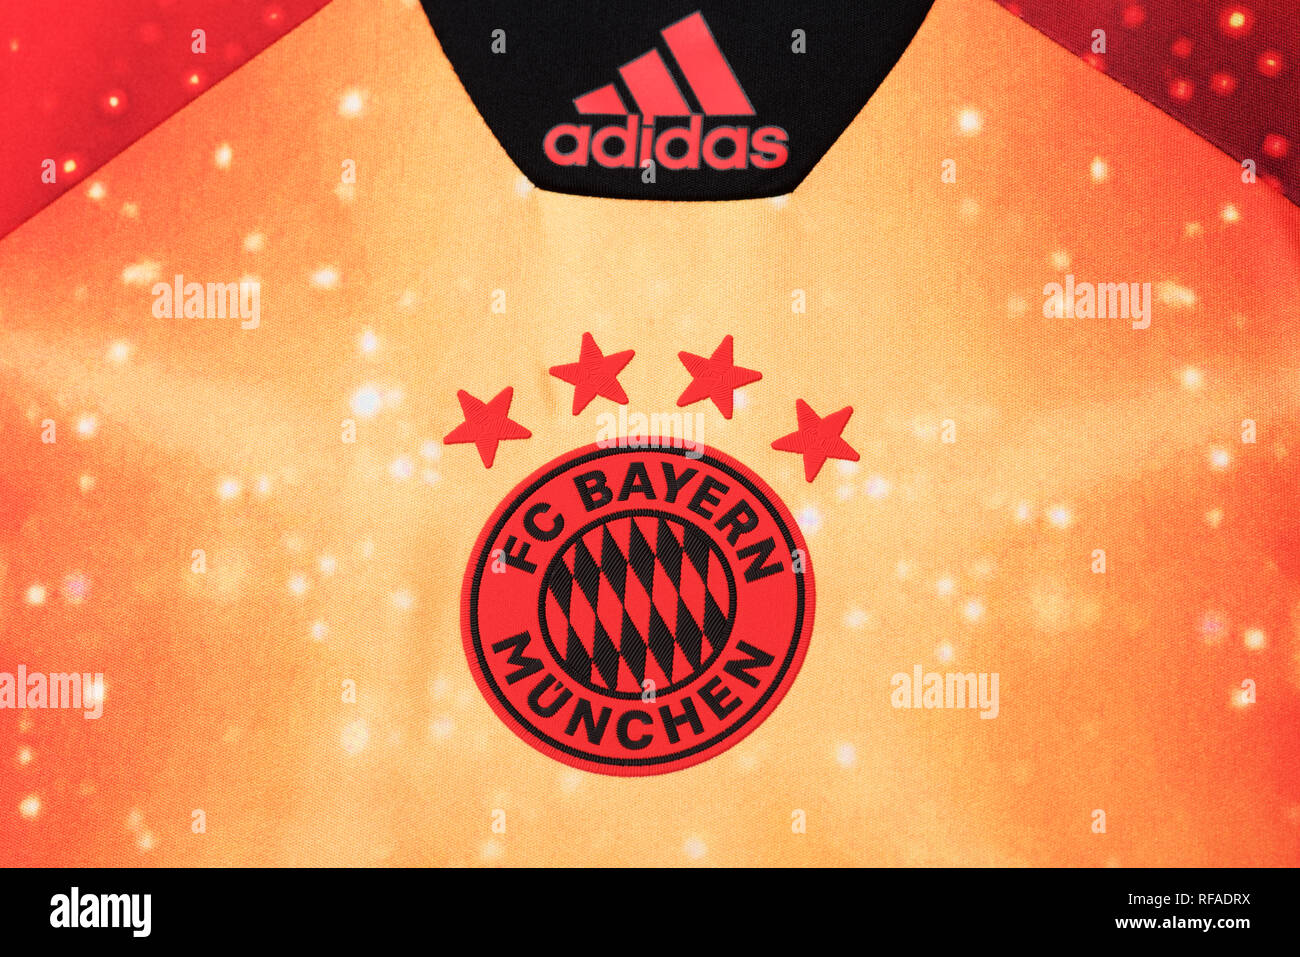 finest selection 1c922 3b668 FC Bayern Munchen limited edition EA Sports Jersey Stock ...